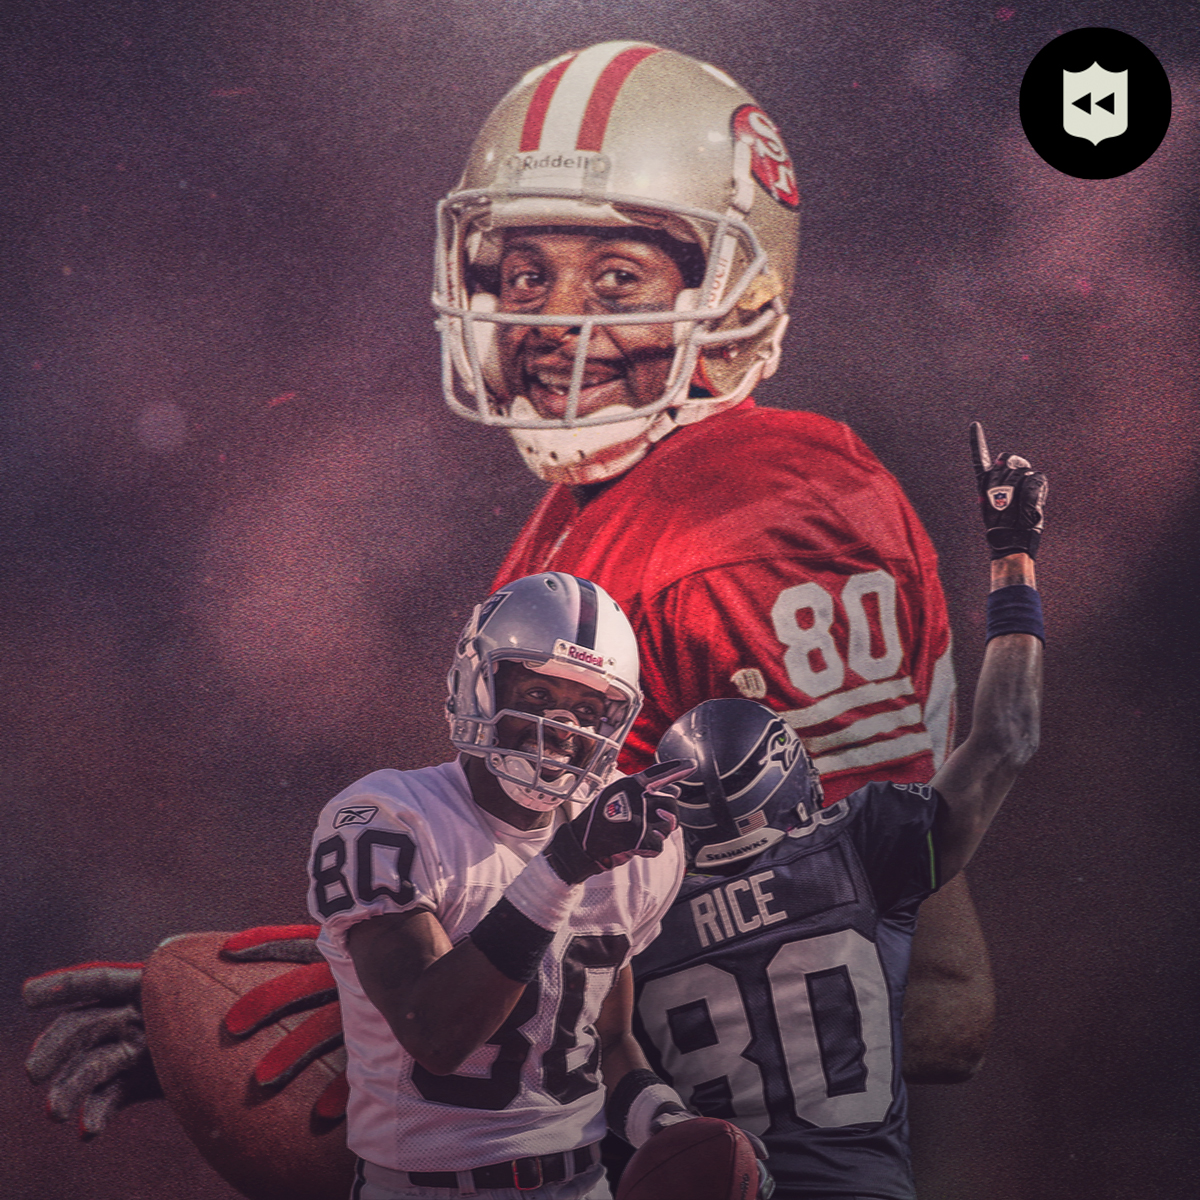 JerryRice_Birthday_Throwback_001.jpg